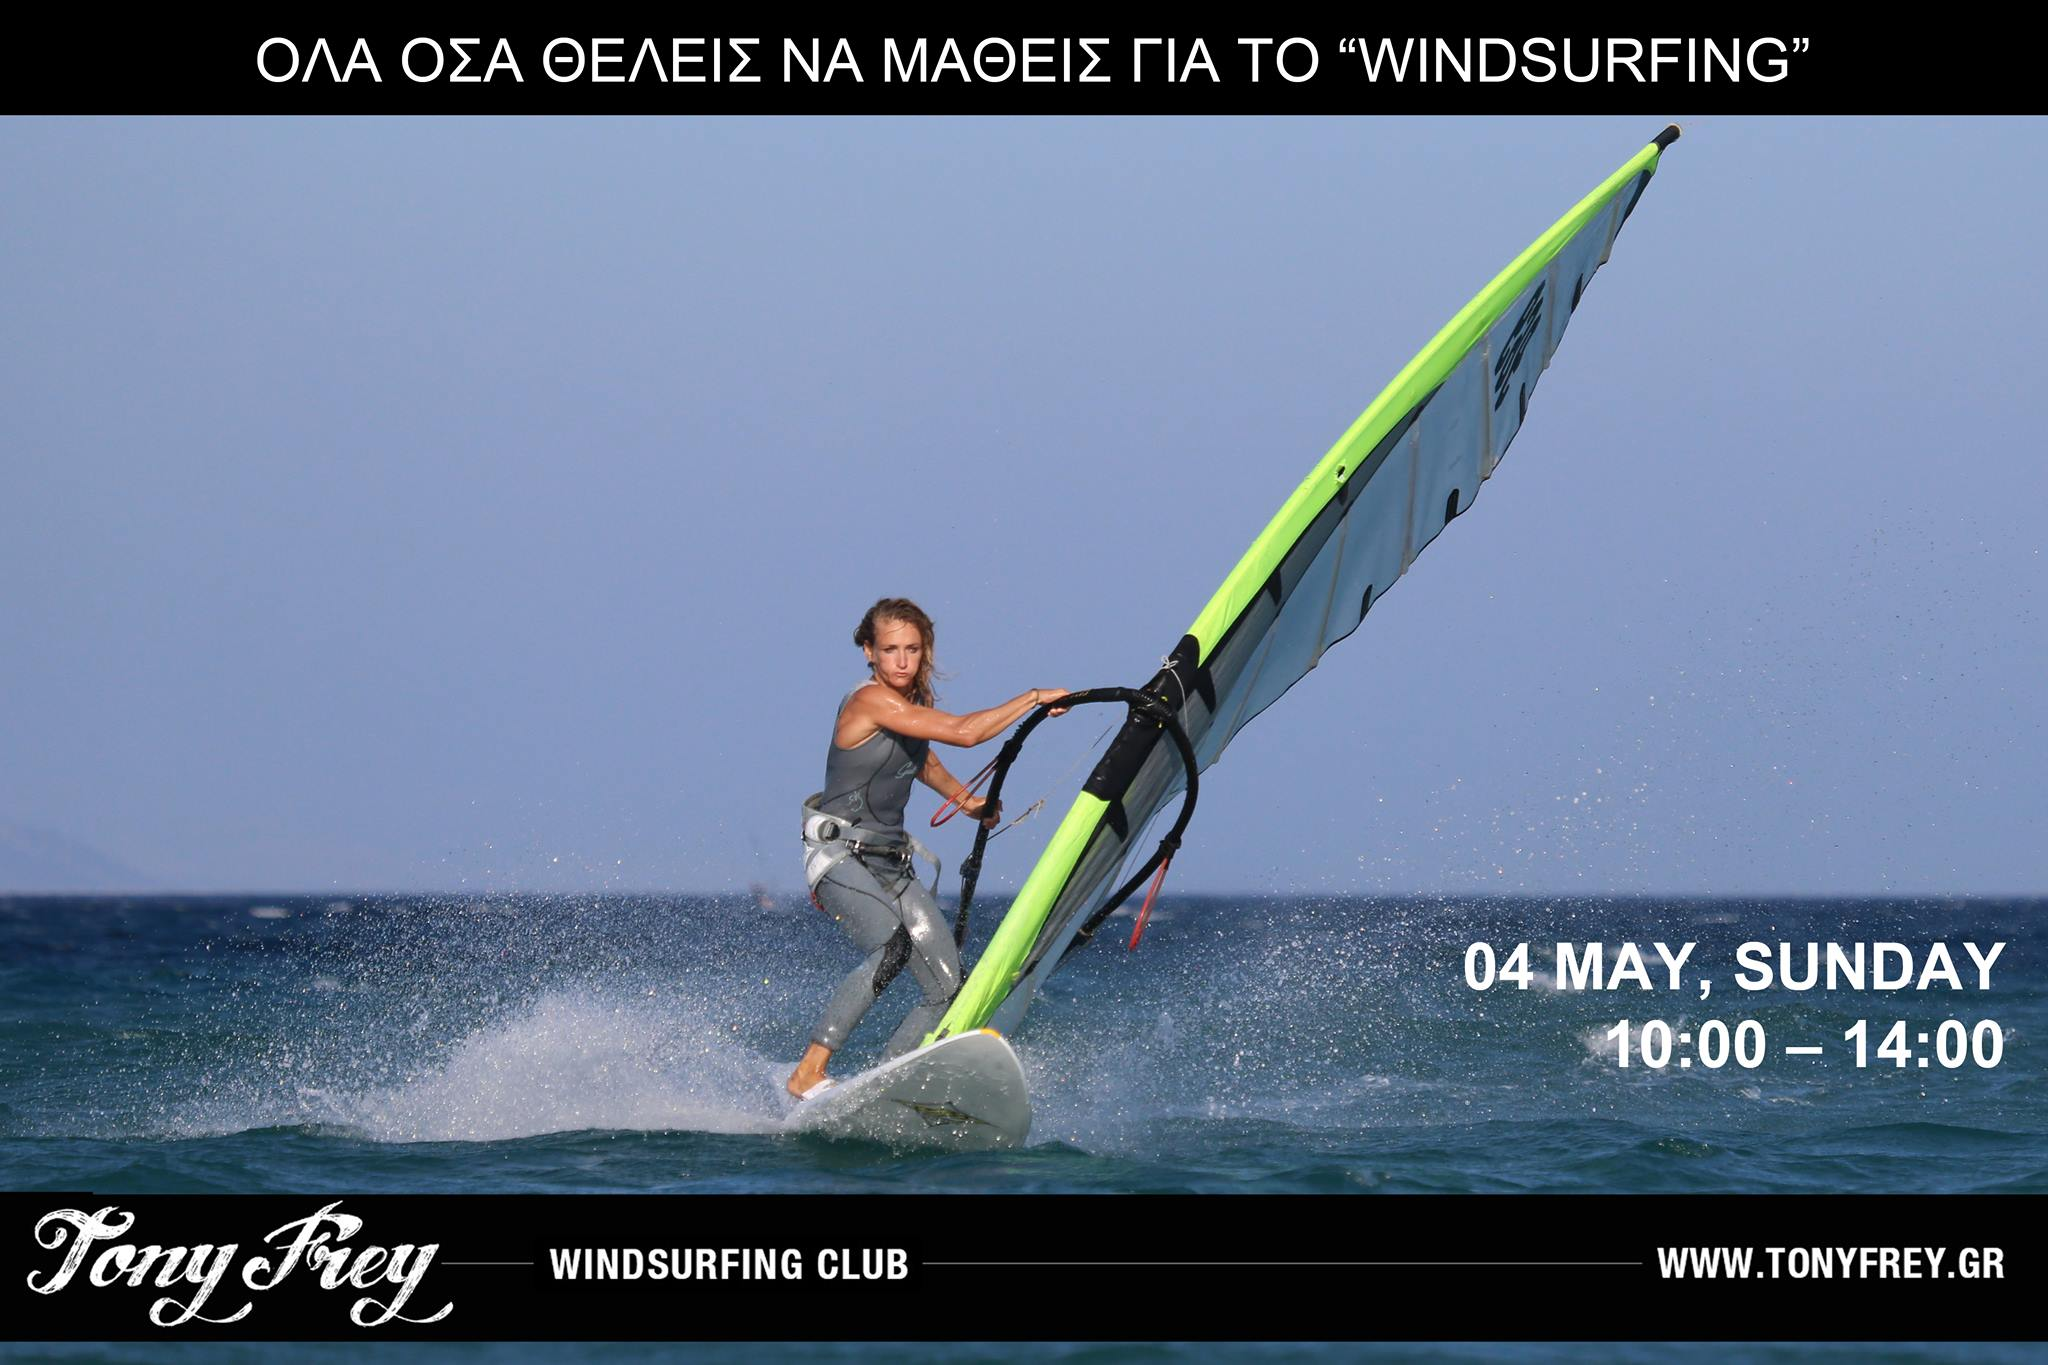 Join our new seminar at Tony Frey Windsurfing Club!